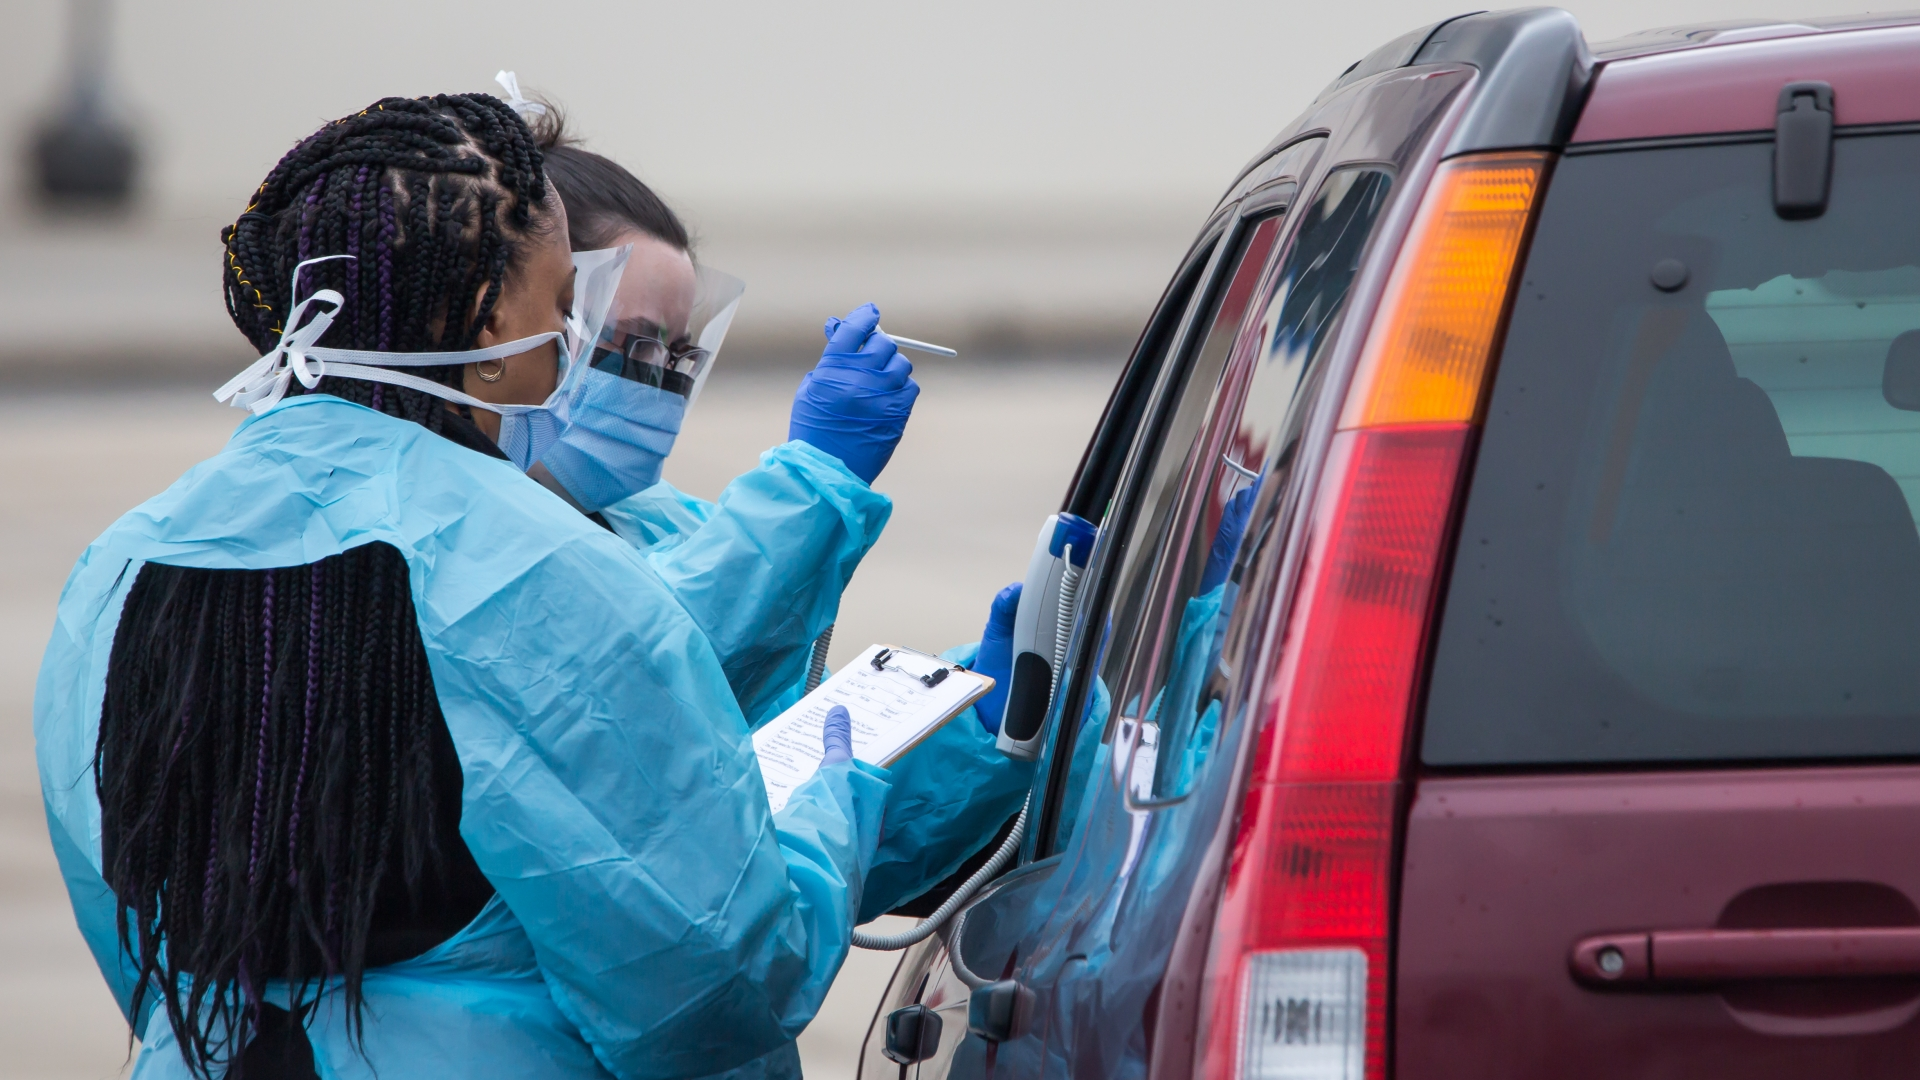 Charlotte Motor Speedway has become the first professional sports venue in the country to serve the community as a remote testing site during the ongoing coronavirus disease 2019 (COVID-19) pandemic.